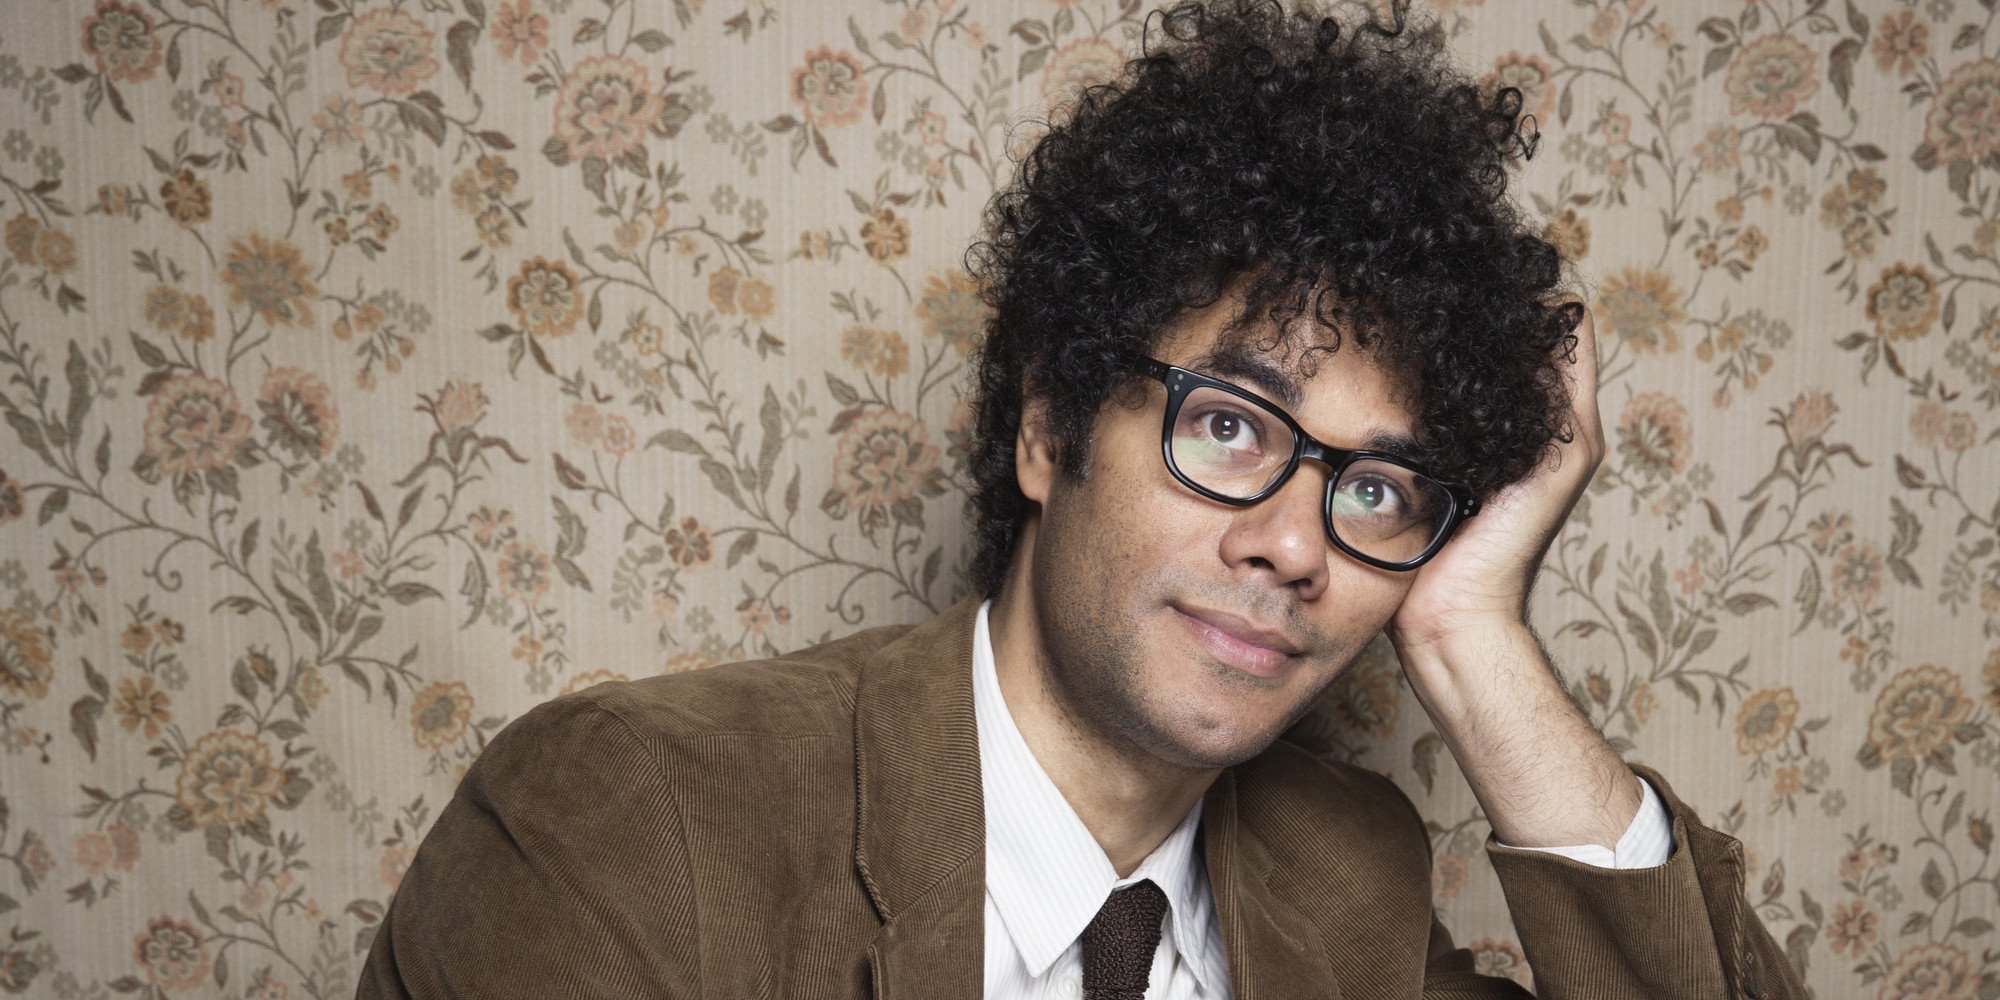 Meet Richard Ayoade, your newest celeb crush